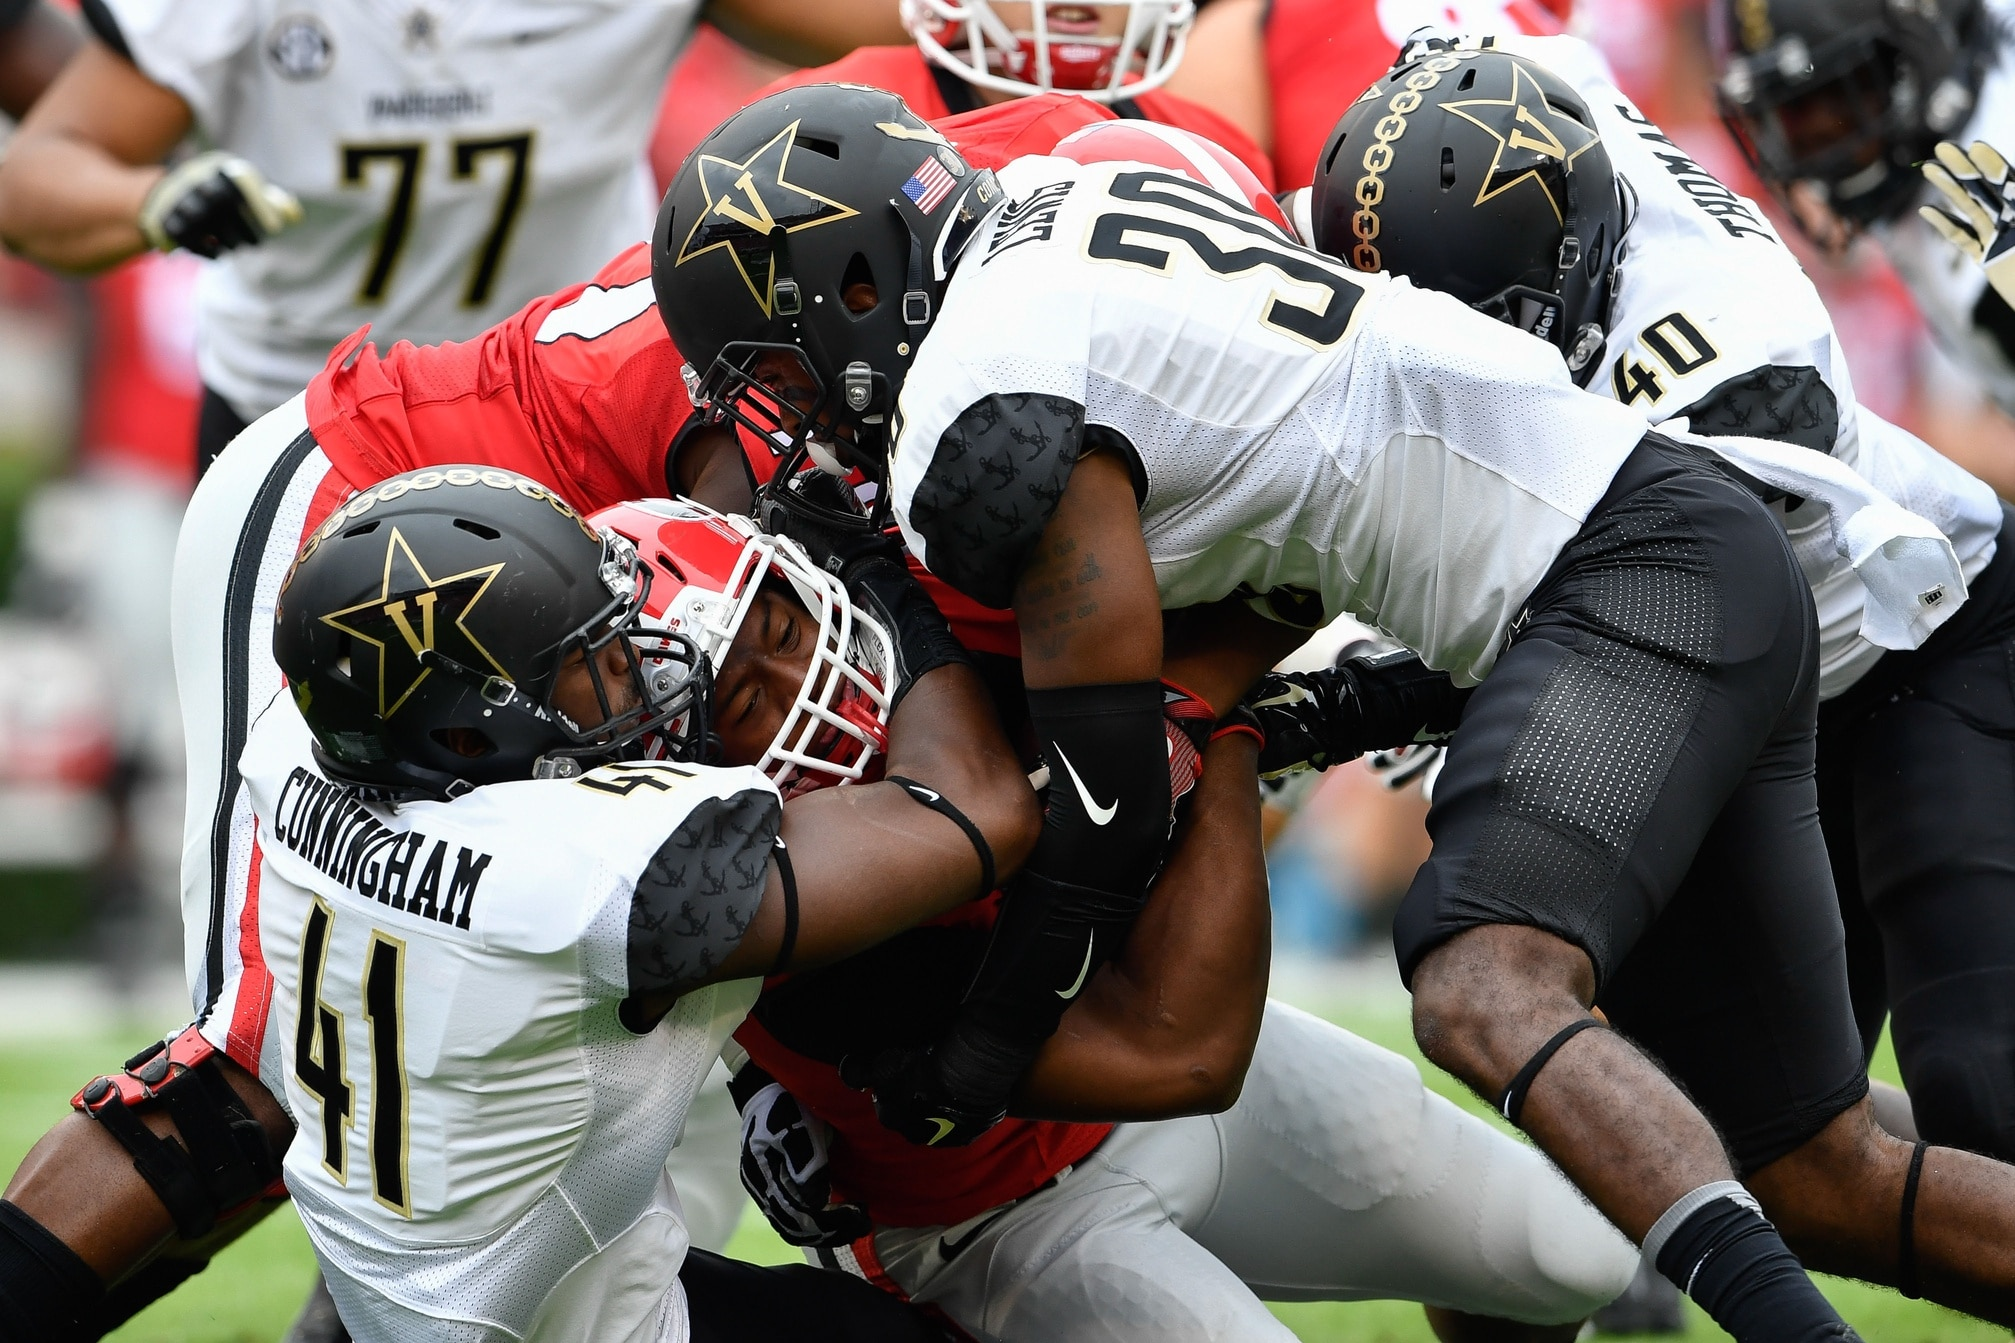 Zach Cunningham is one of the most underrated players of the 2017 NFL Draft